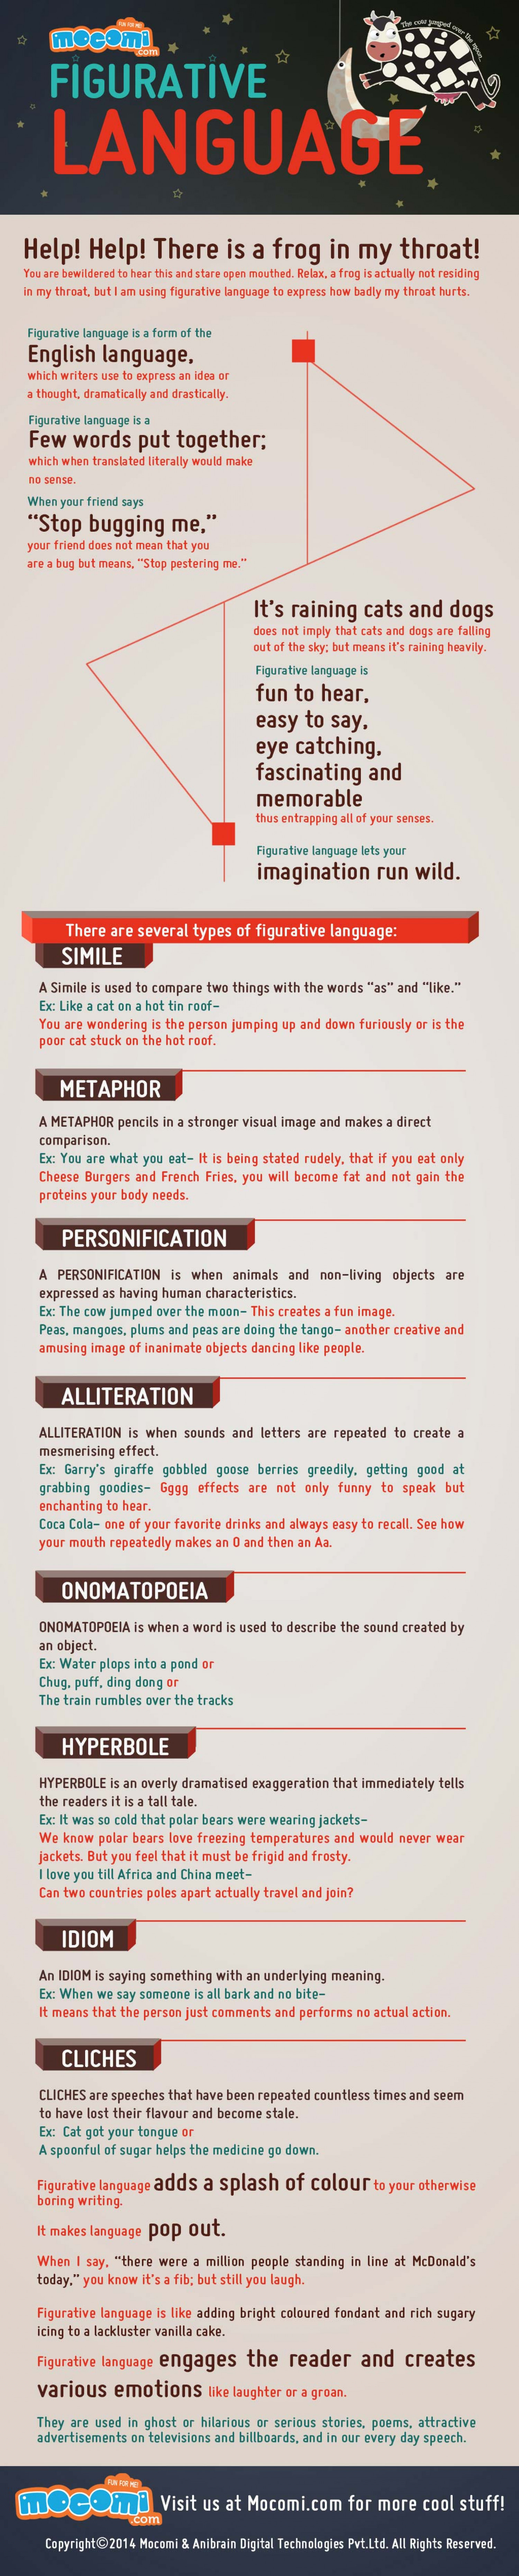 Figurative Language Infographic